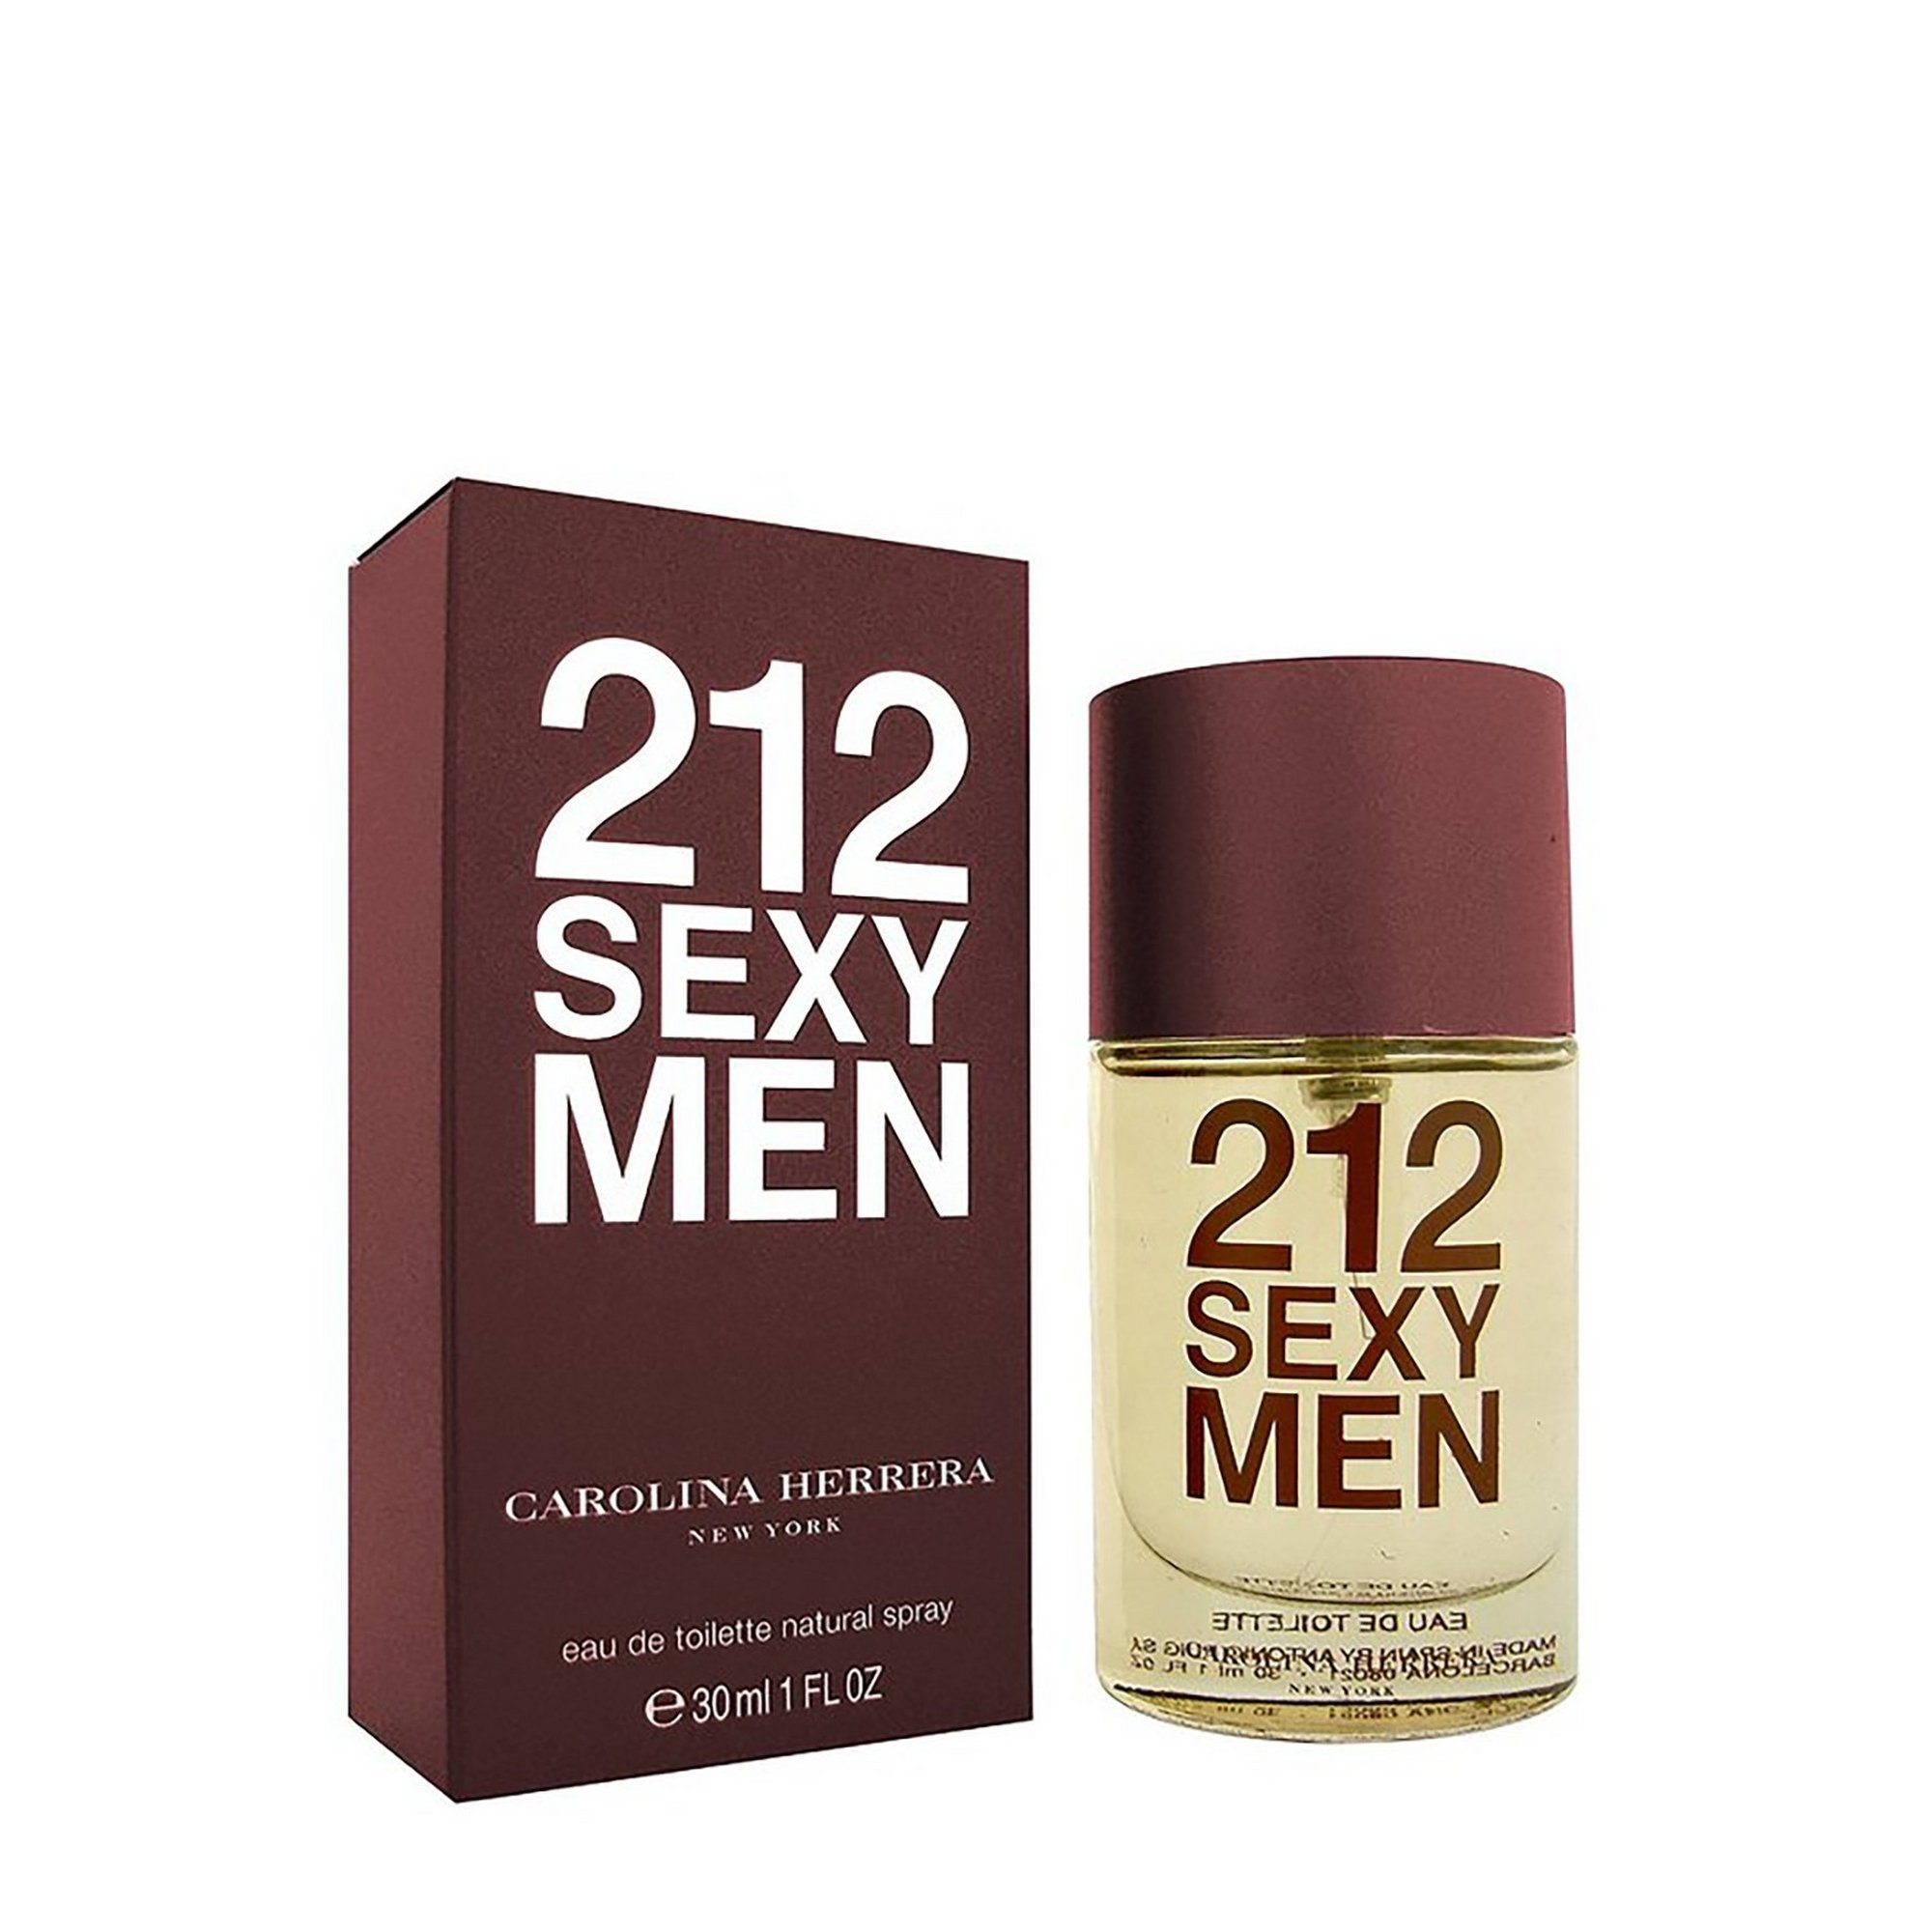 Image of Carolina Herrera 212 Sexy Men 30ml EDT